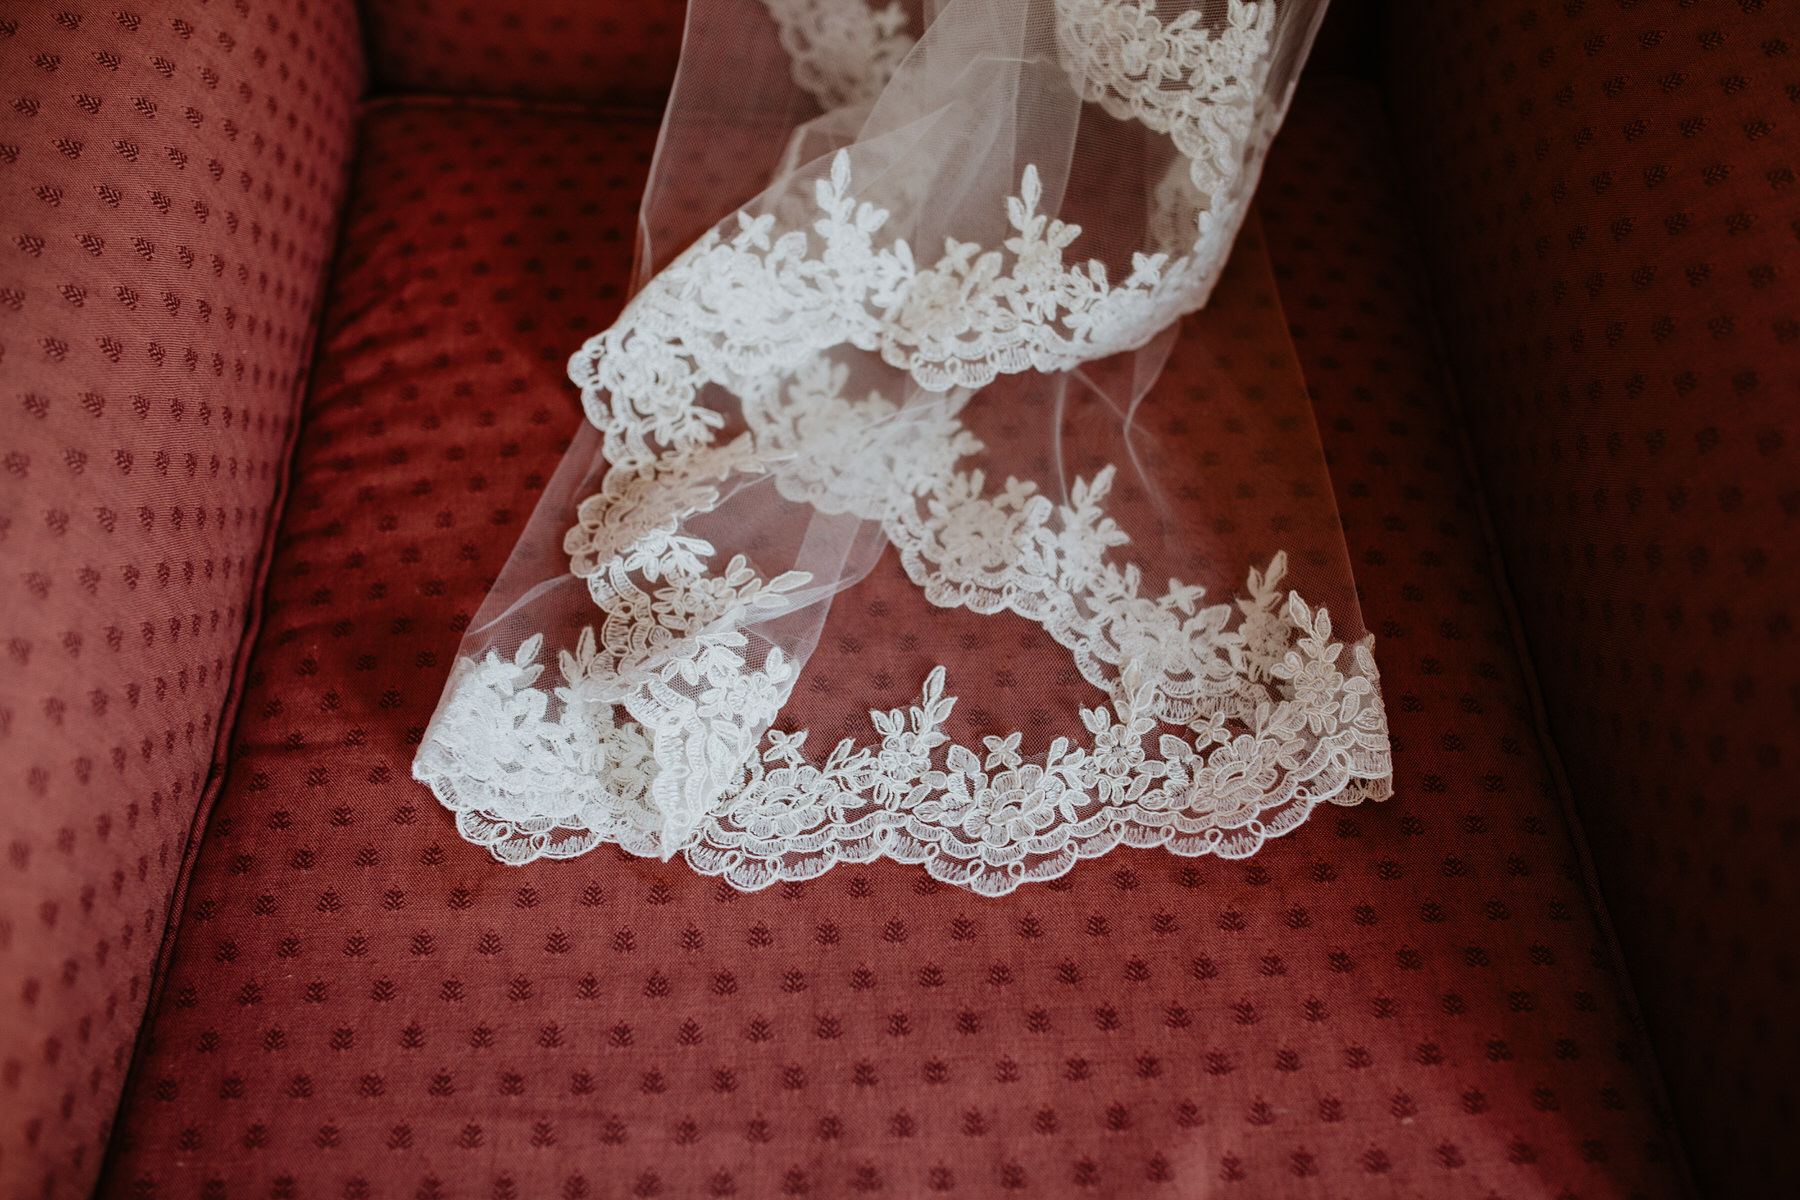 26 brides veil on red chair Yolande De Vries Photography.jpg